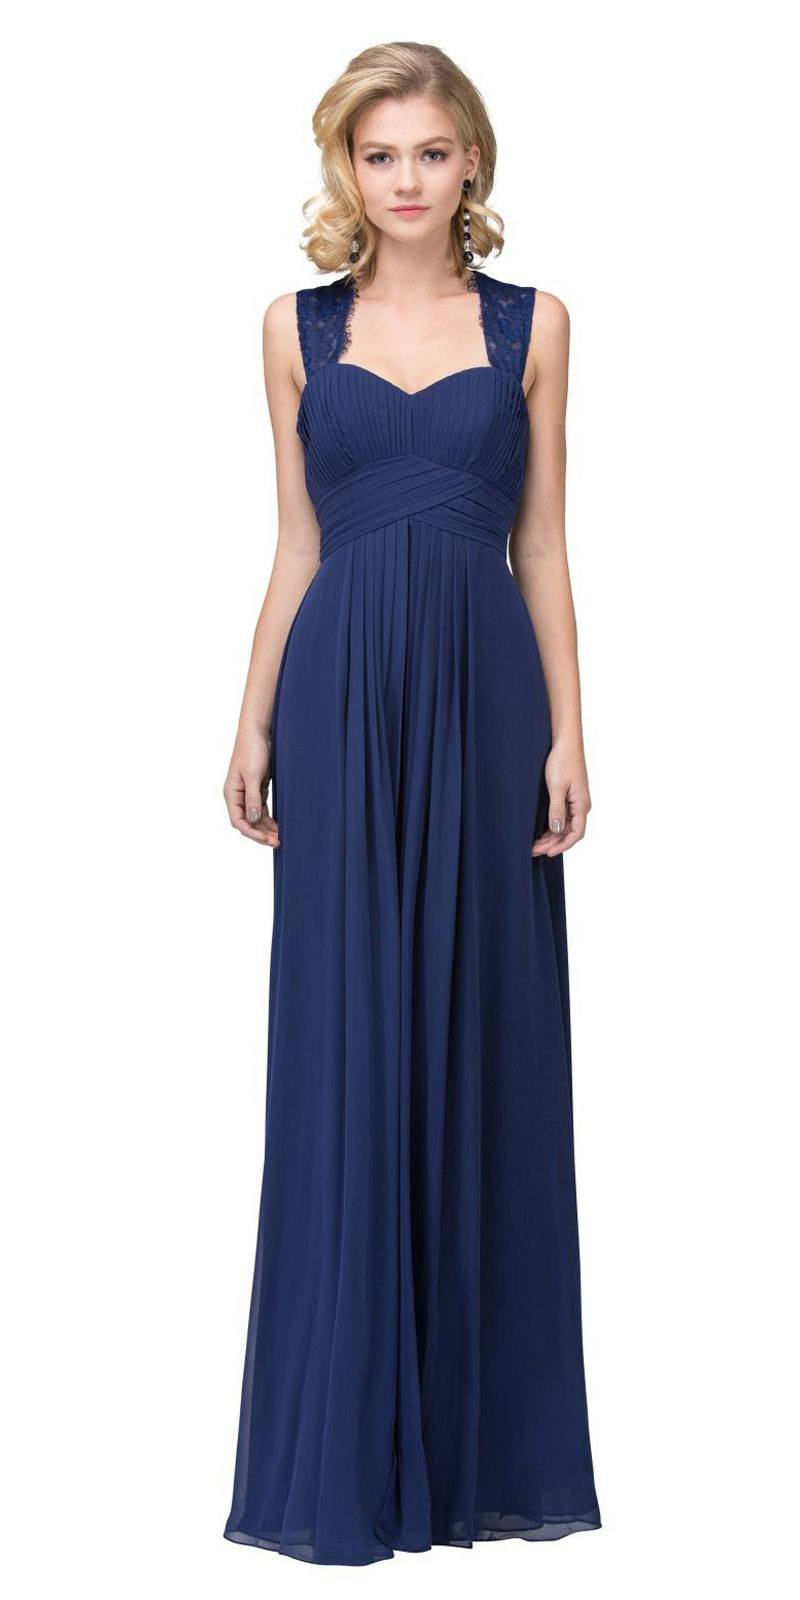 38f8b393b0e97 Starbox USA Navy Blue Long Bridesmaids Dress Cut Out Back Empire Waist. Tap  to expand